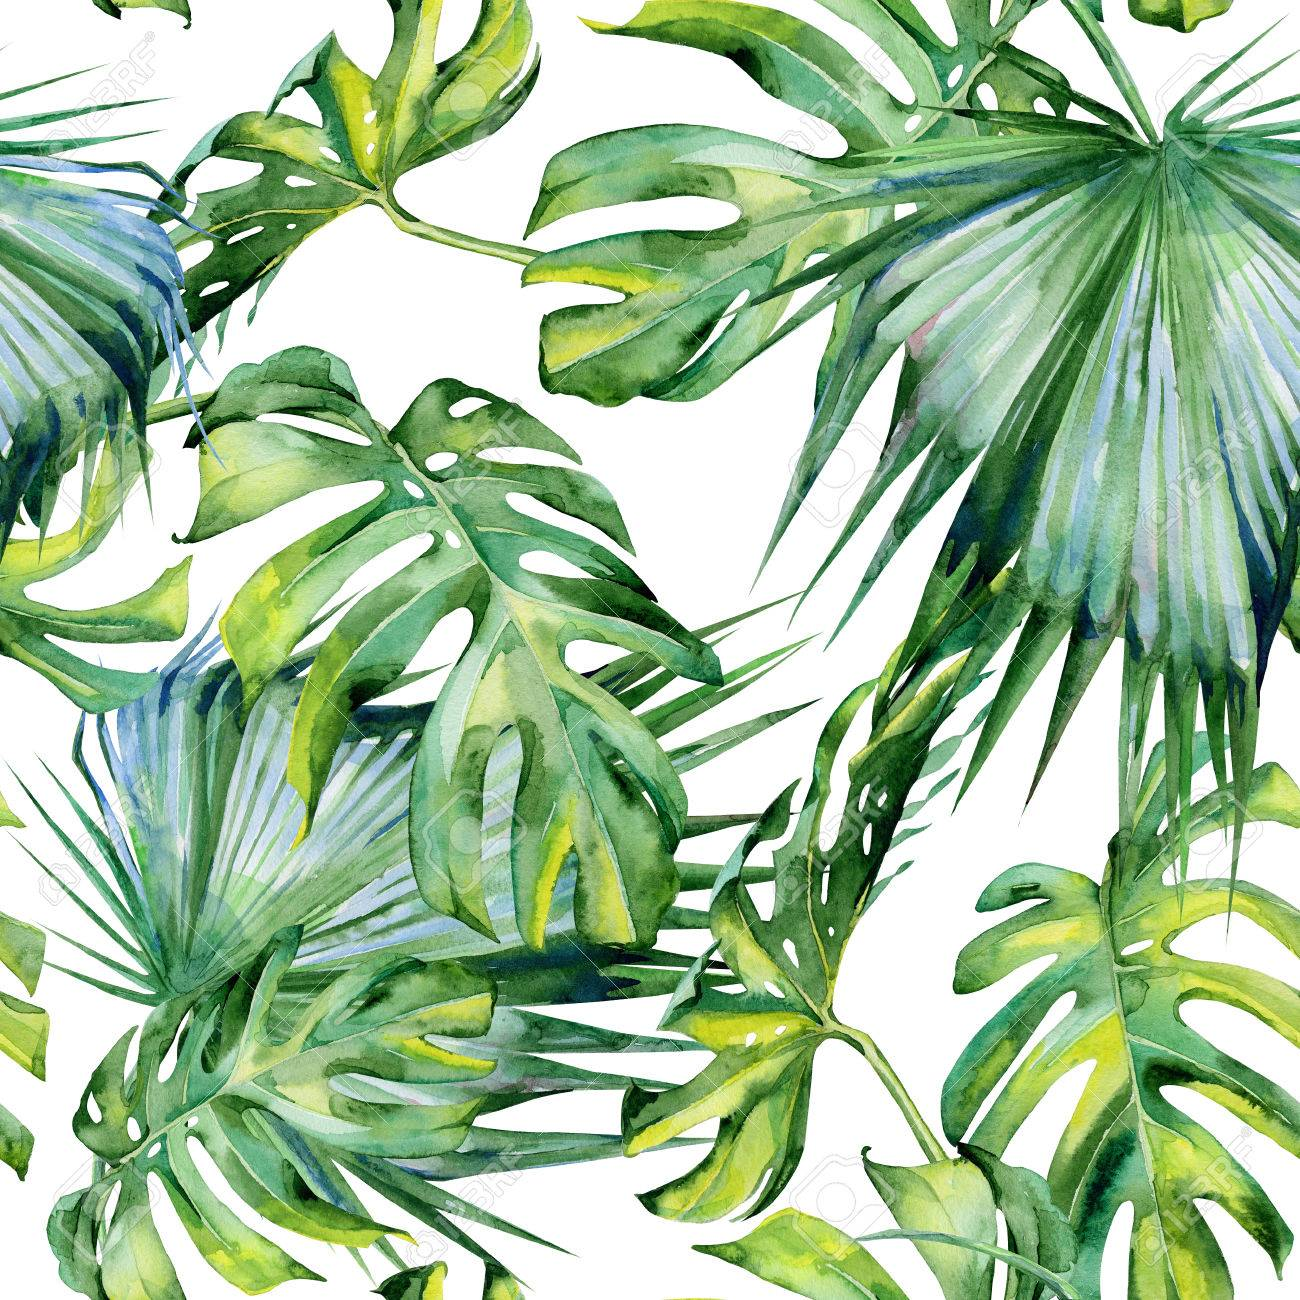 Seamless Watercolor Illustration Of Tropical Leaves Dense Jungle Stock Photo Picture And Royalty Free Image Image 65597706 Download all photos and use them even for commercial projects. seamless watercolor illustration of tropical leaves dense jungle